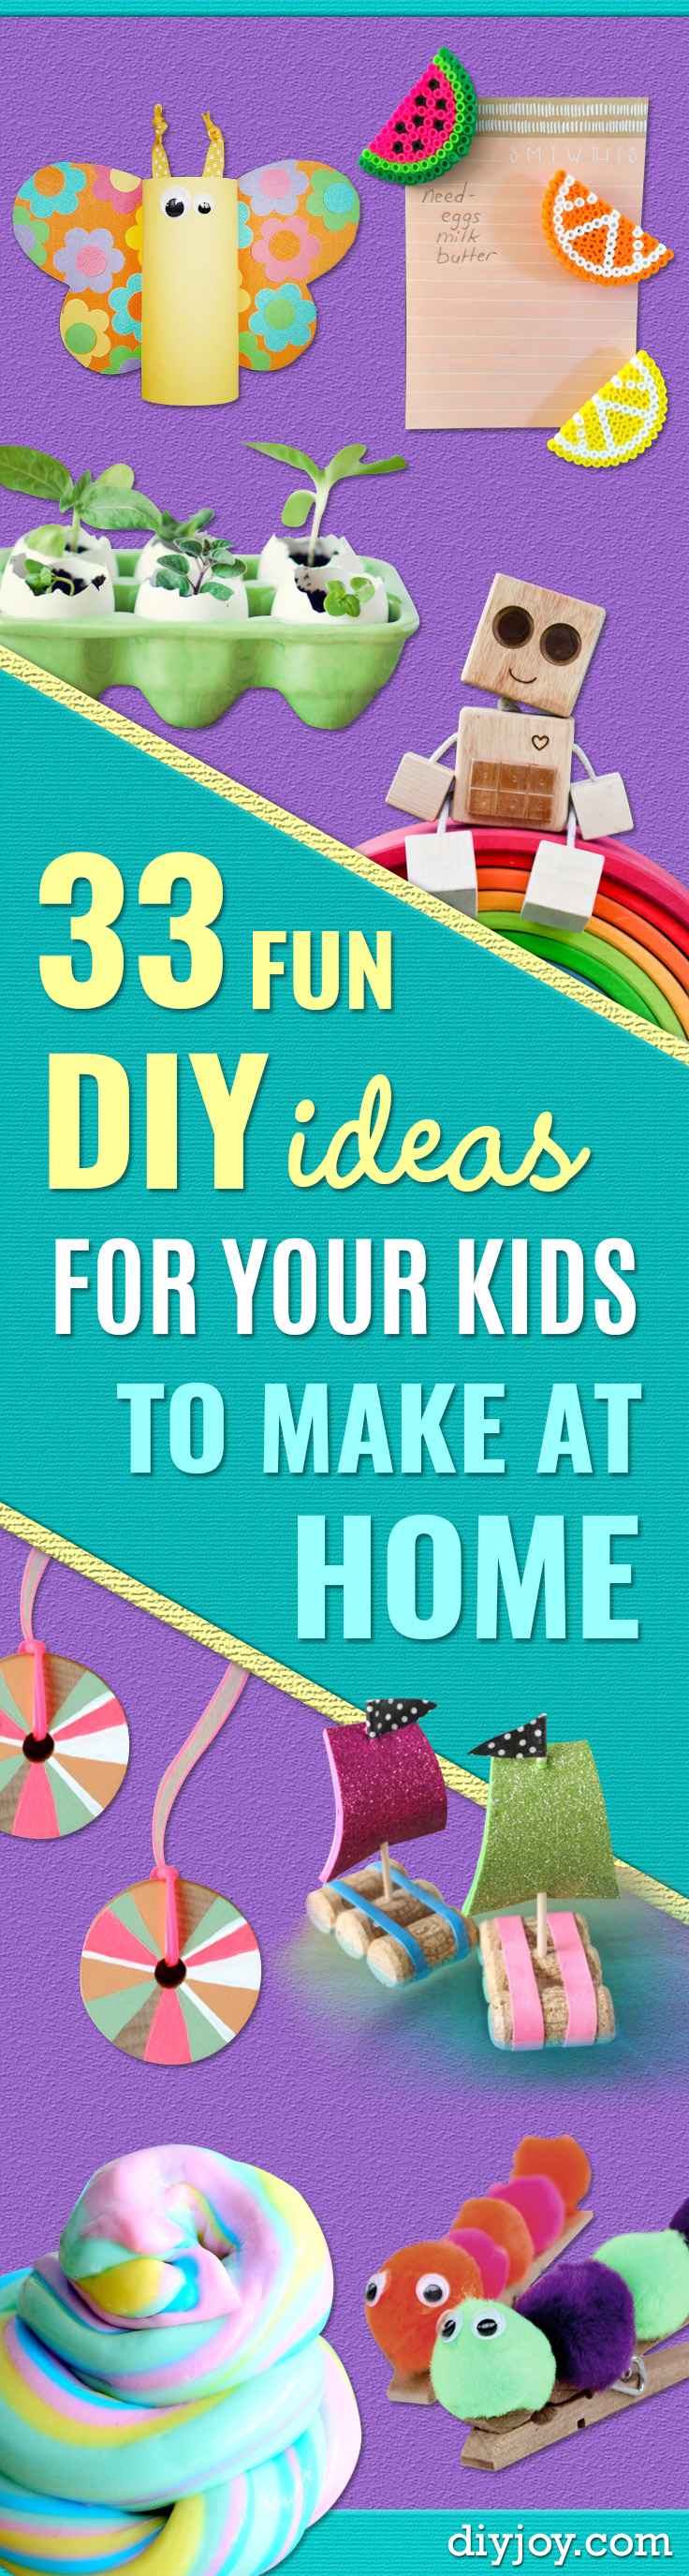 Craft Ideas for Children - Cute Paper Crafts, Fall and Winter Fun, Things For Toddlers, Babies, Boys and Girls to Make At Home http://diyjoy.com/diy-ideas-for-kids-to-make